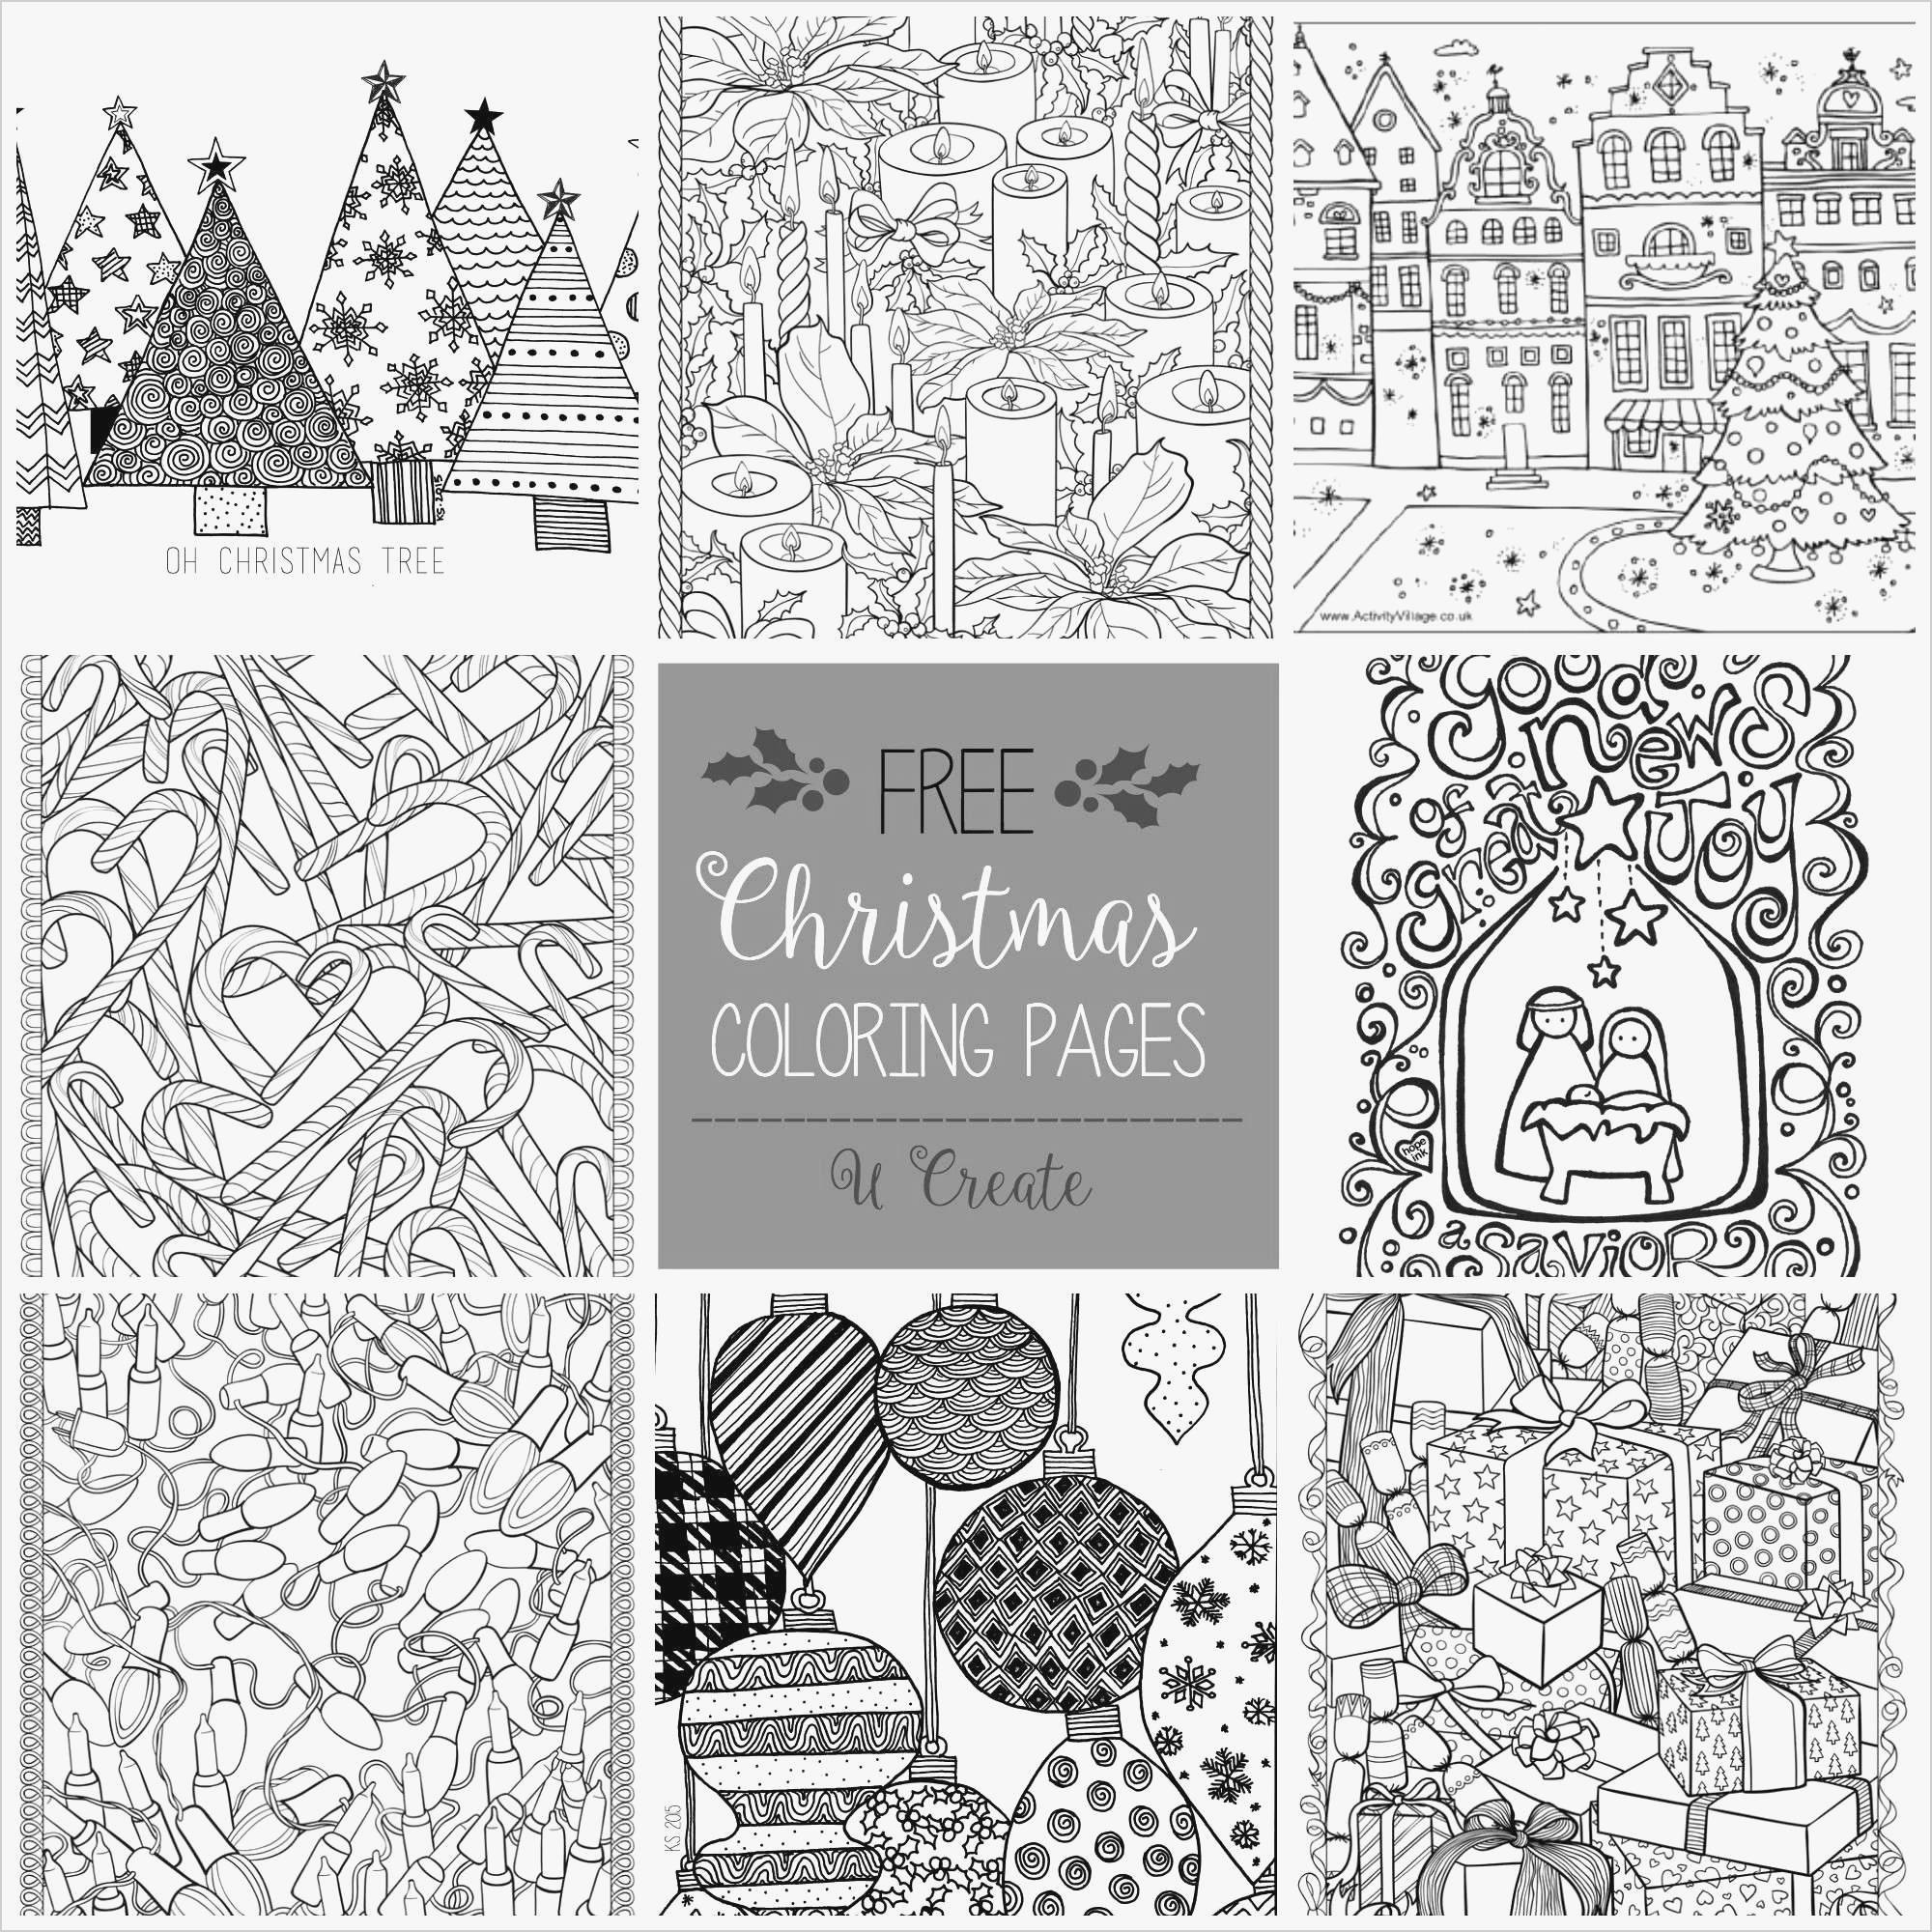 Christmas Coloring Pages For Grade 6 With Free Collection Of 40 2nd Download Them